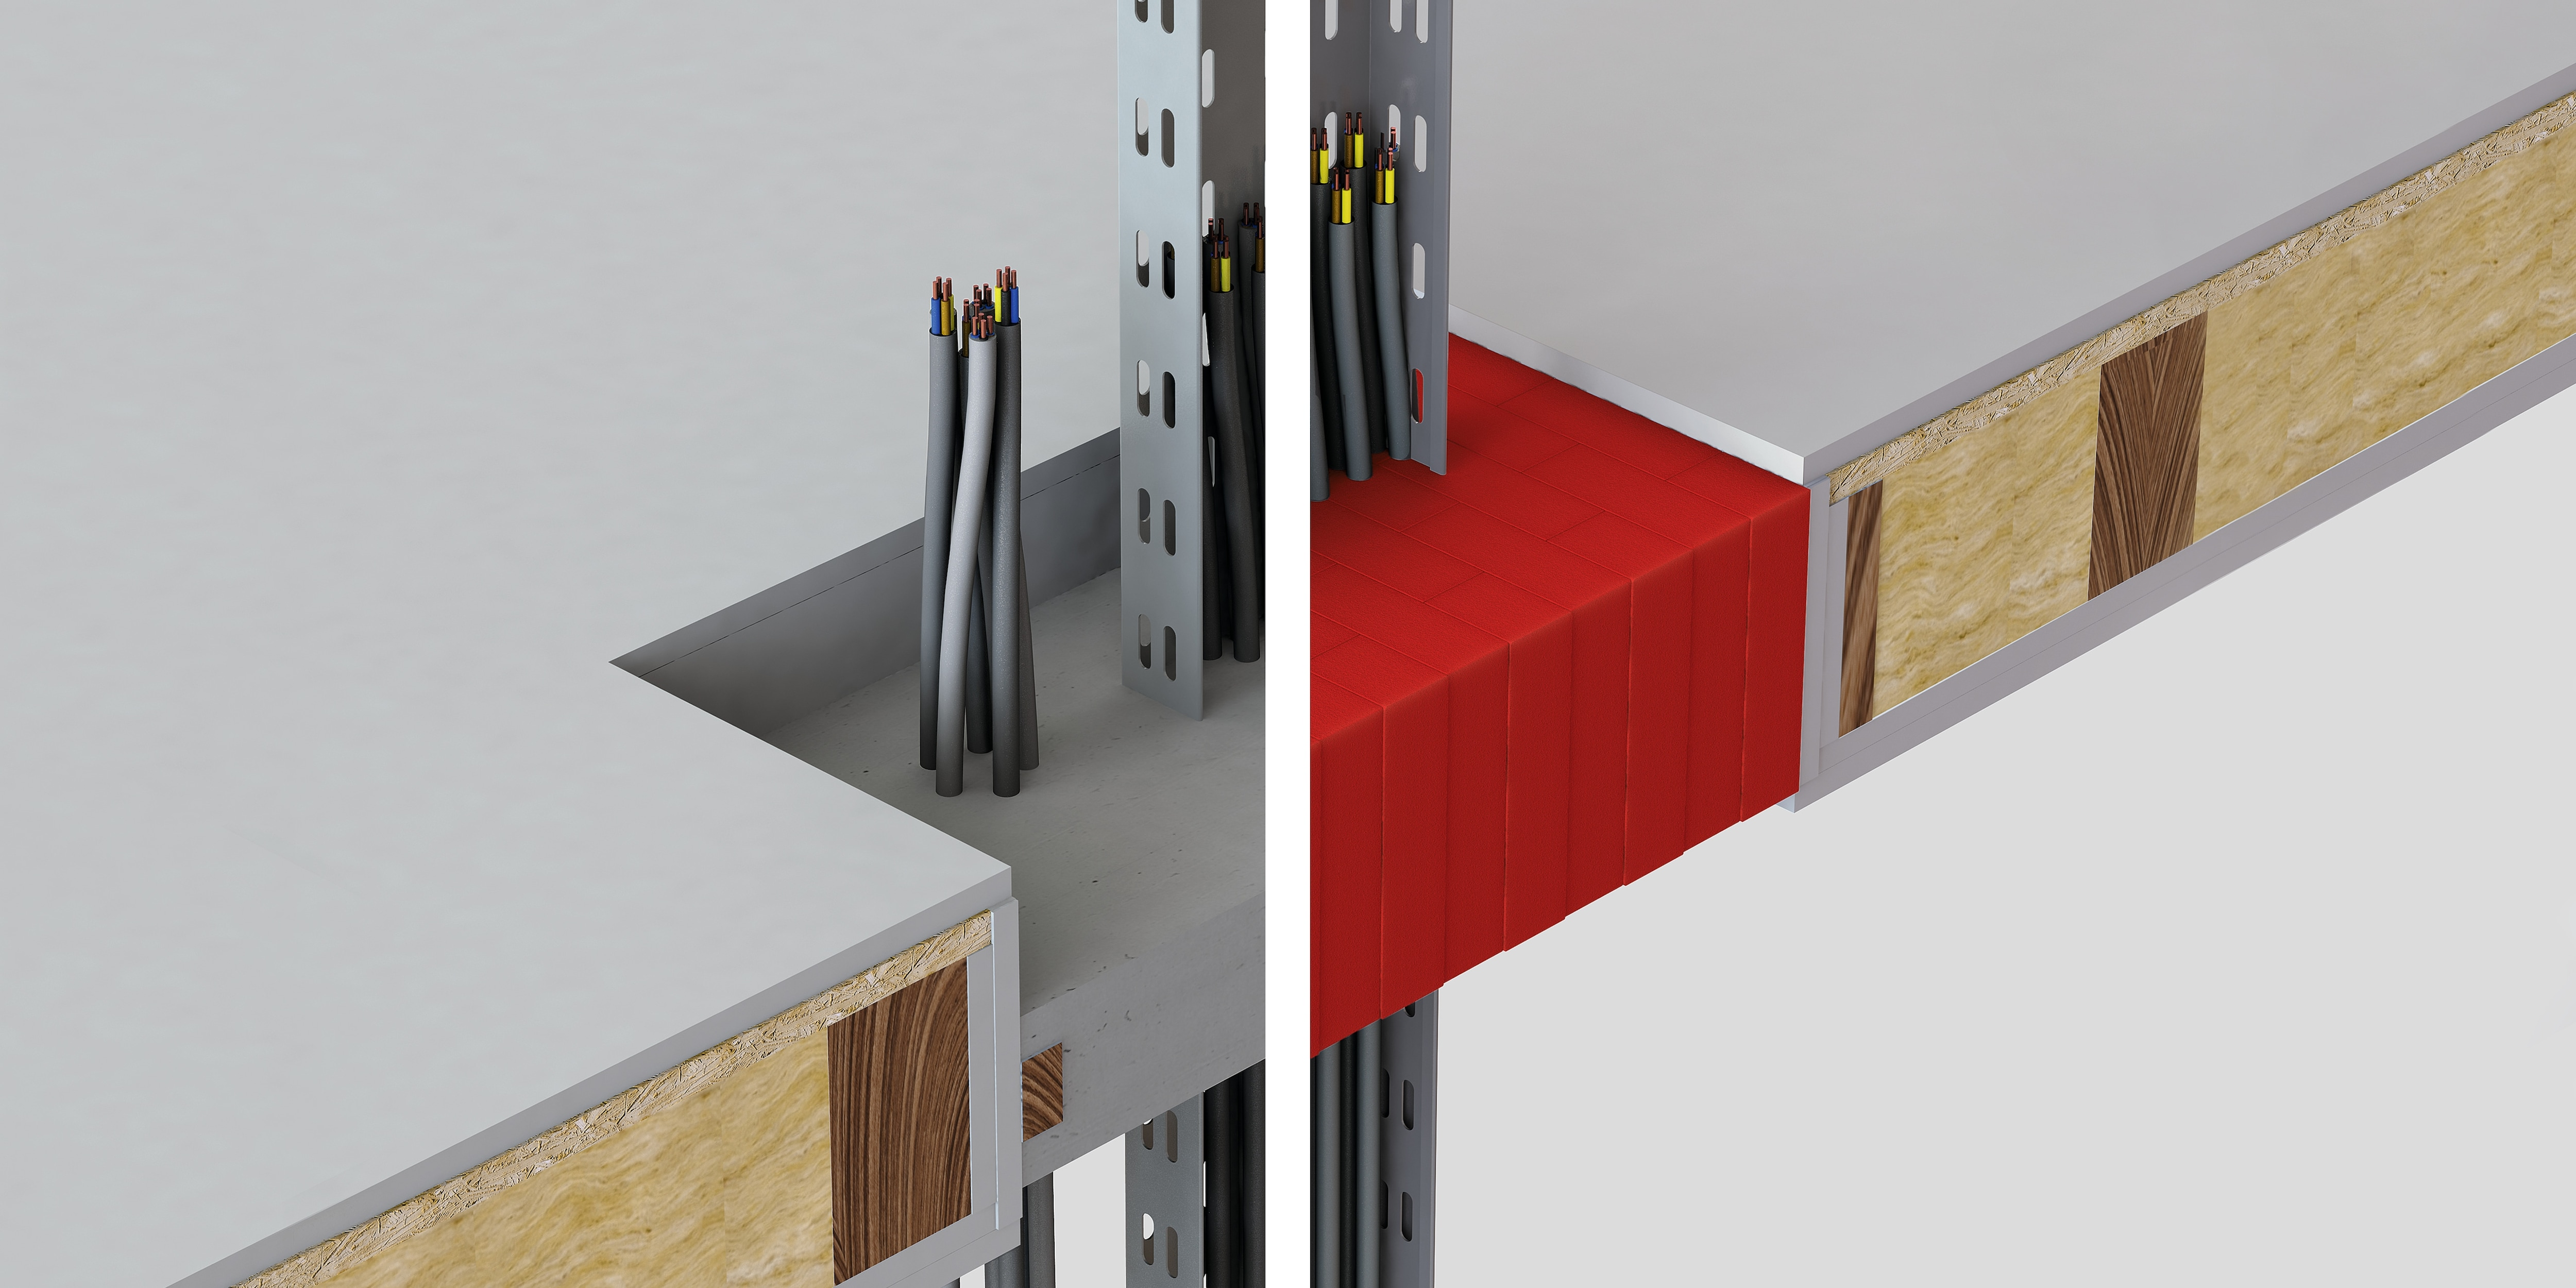 3D rendering showing a comparison of a traditional mortar solution (on the left) and dry Hilti firestop blocks  in red (on the right) through a timber floor